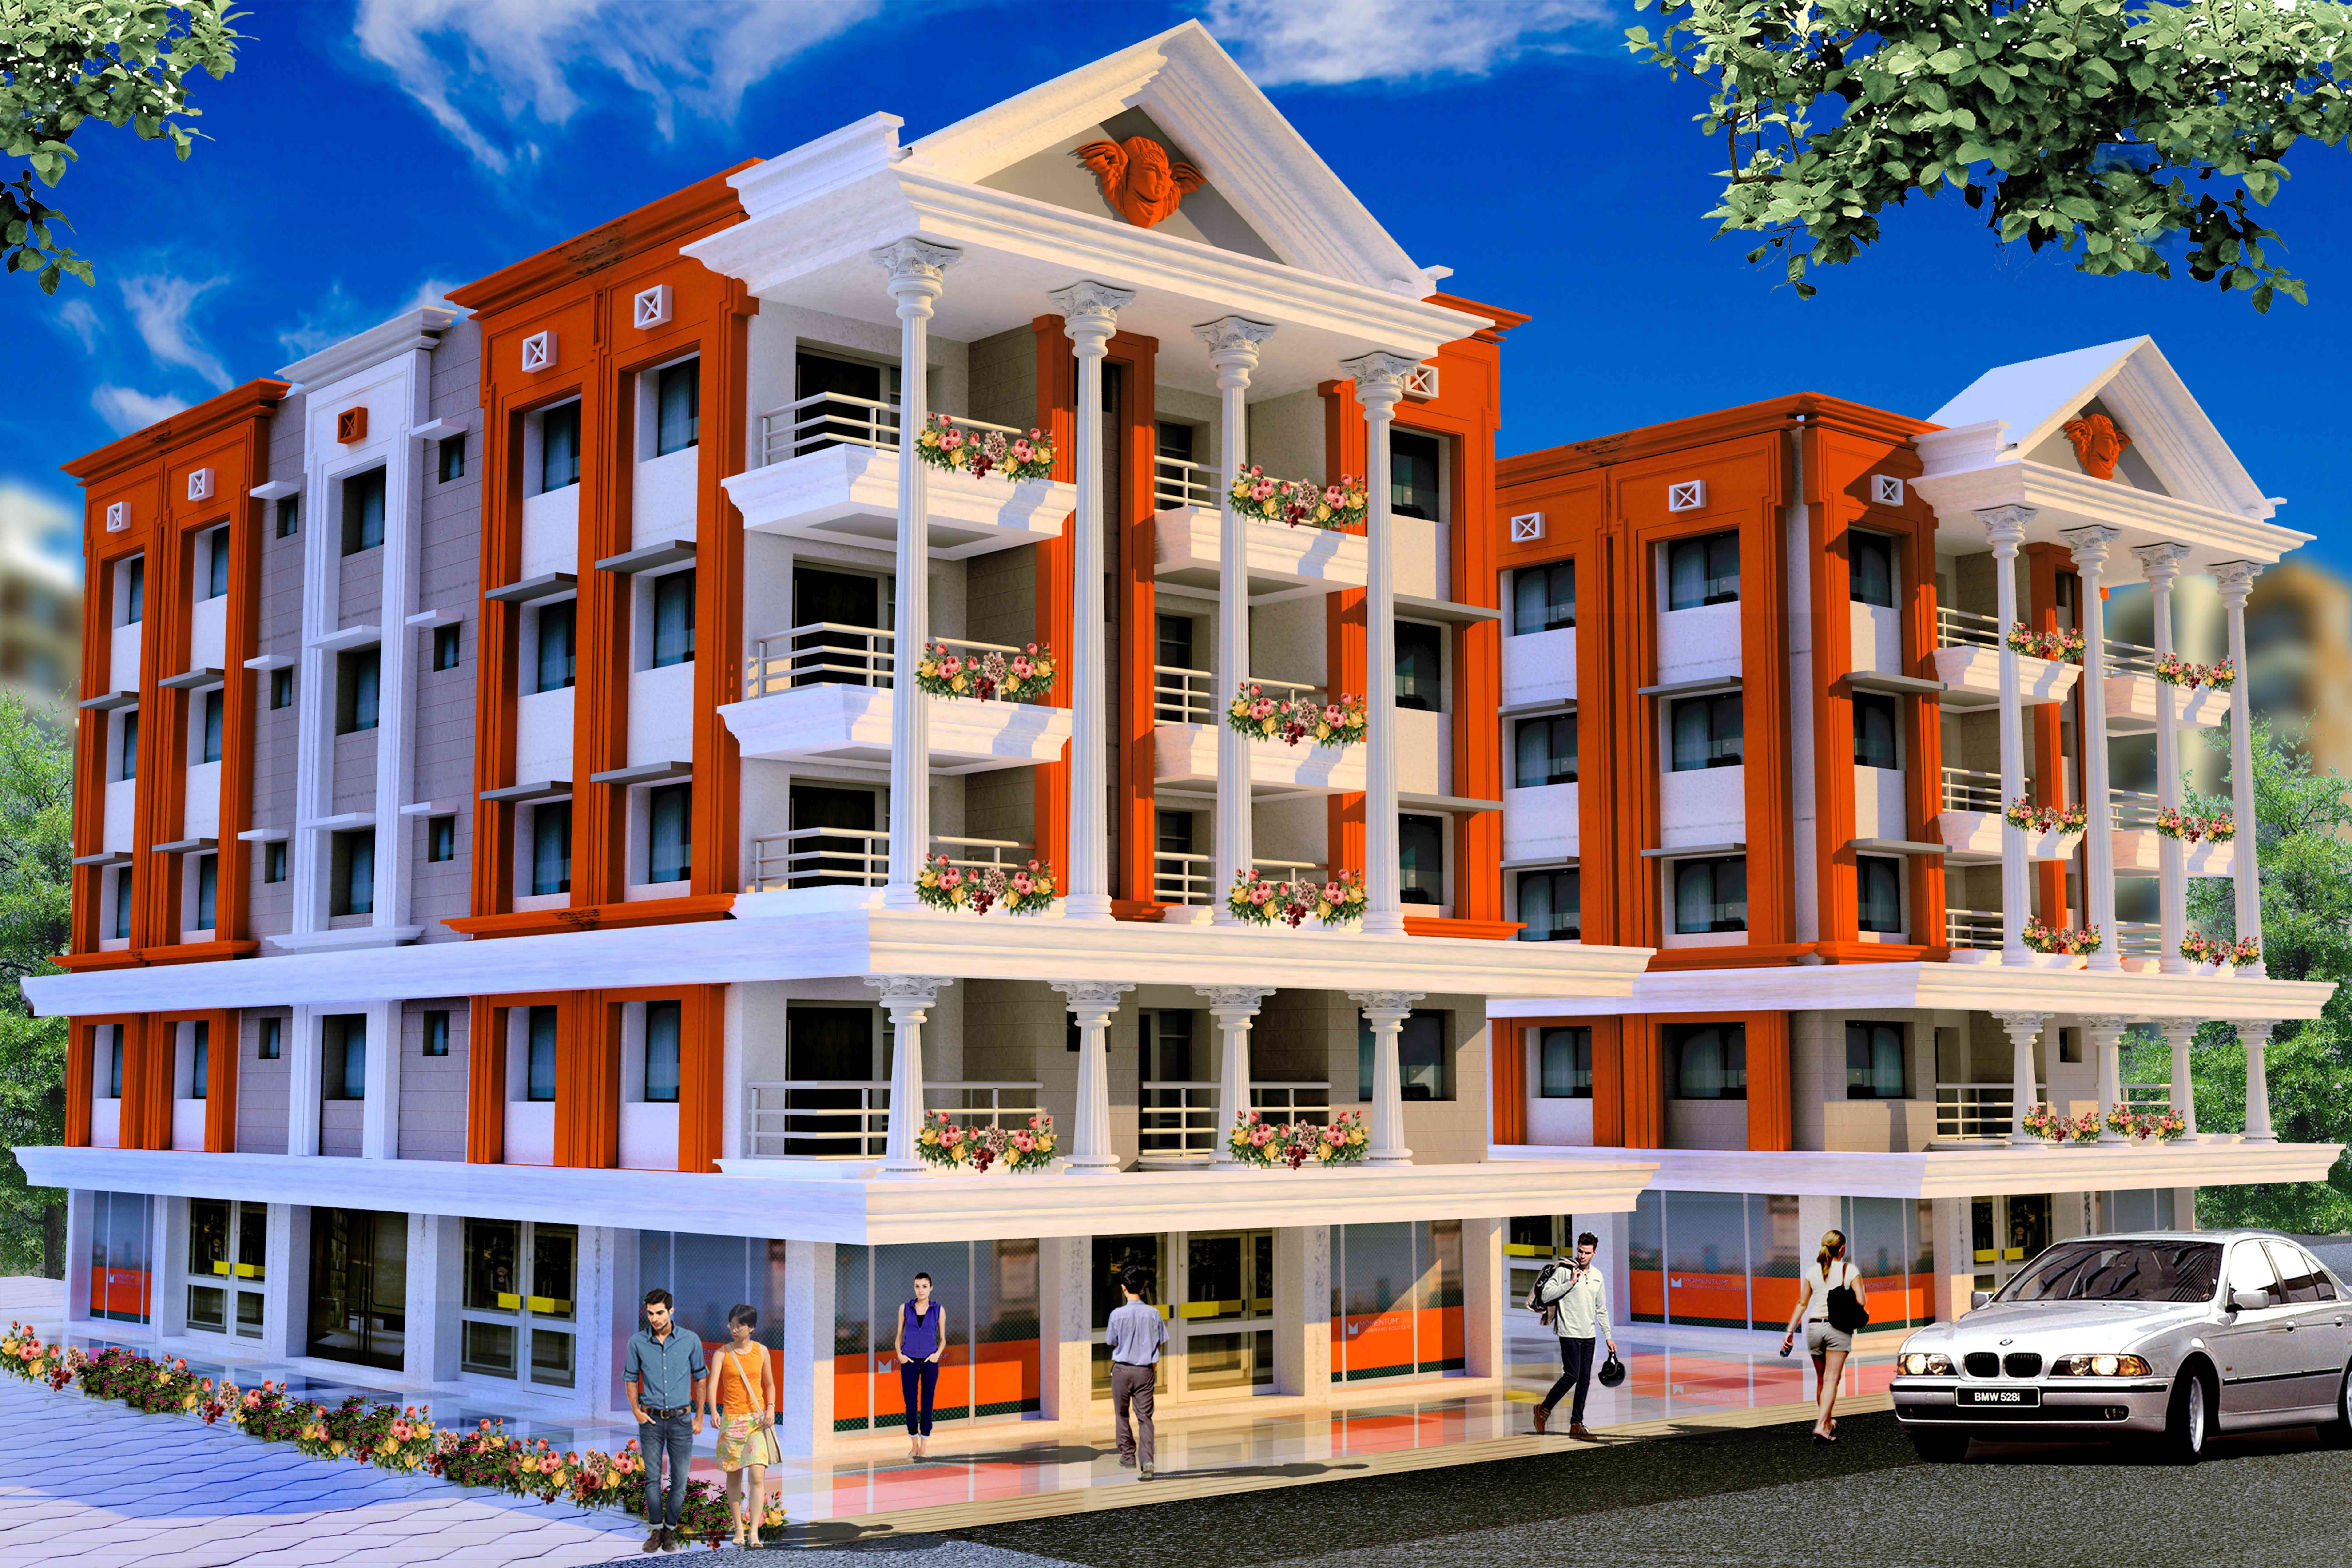 3 BHK Flats in West Bengal